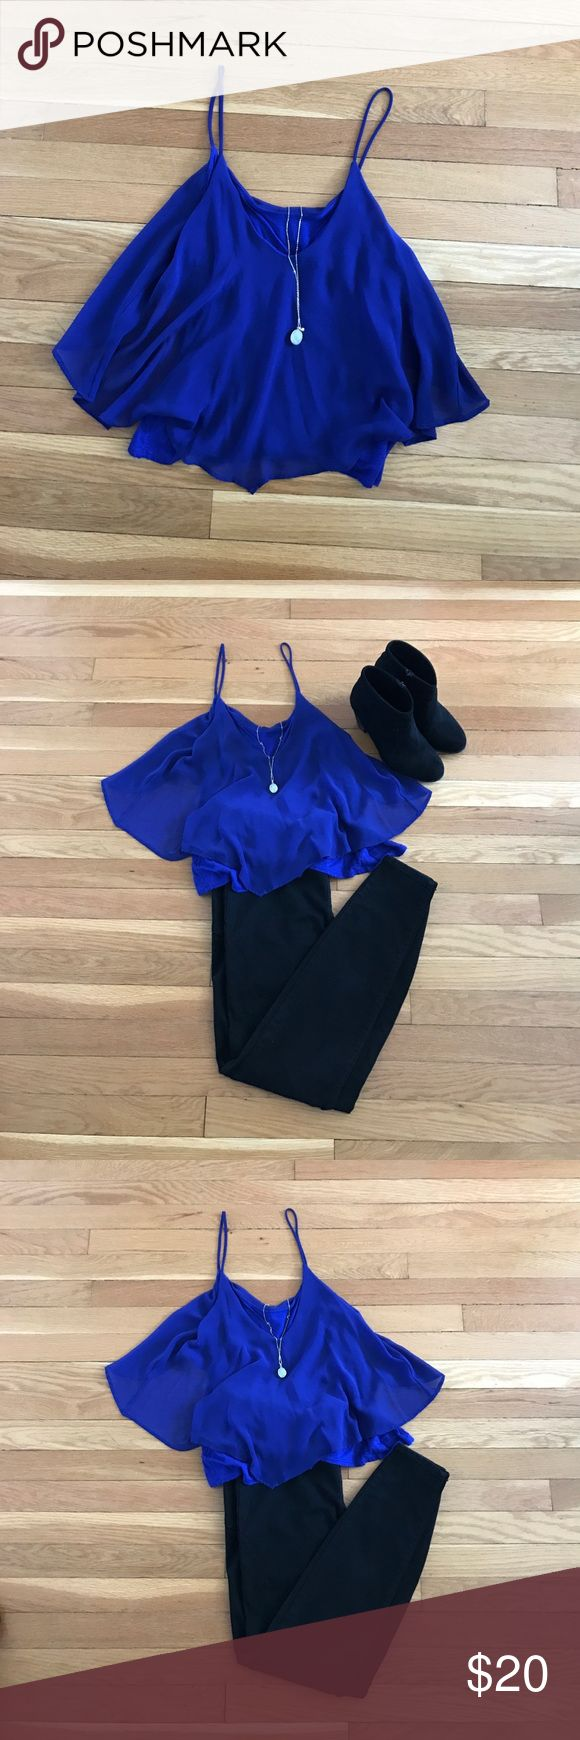 Flirty Blue Urban Outfitters Tank Top This flowy blue Urban Outfitters tank top is great for a night out or a day around town. Pair with black jeans and booties for an evening look, or jeans and sandals for a daytime look. Urban Outfitters Tops Tank Tops